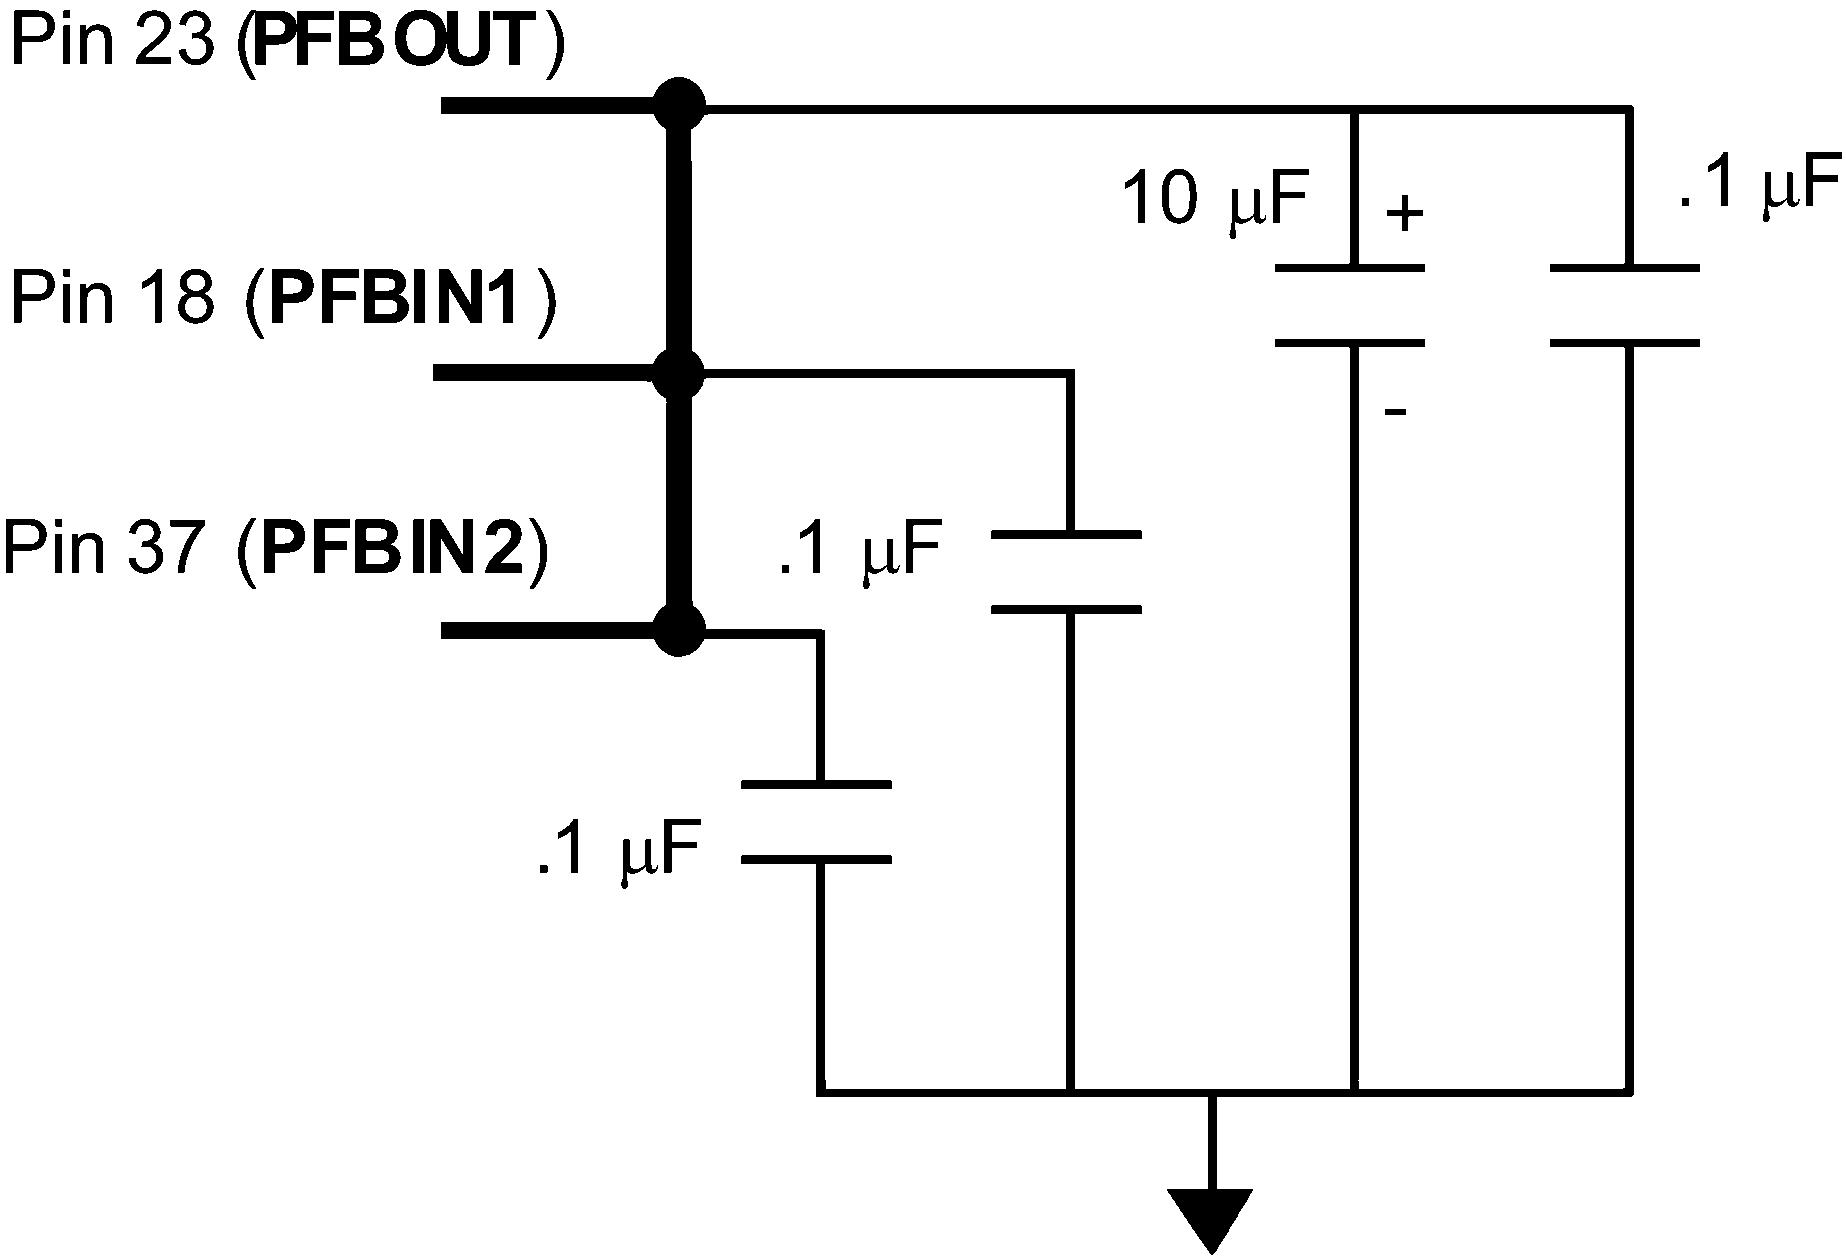 Dp83848i Circuit Diagram Of Digital Isolation And Termination Dp83848c Dp83848vyb Dp83848yb 30011713 Figure 7 4 Power Feedback Connection